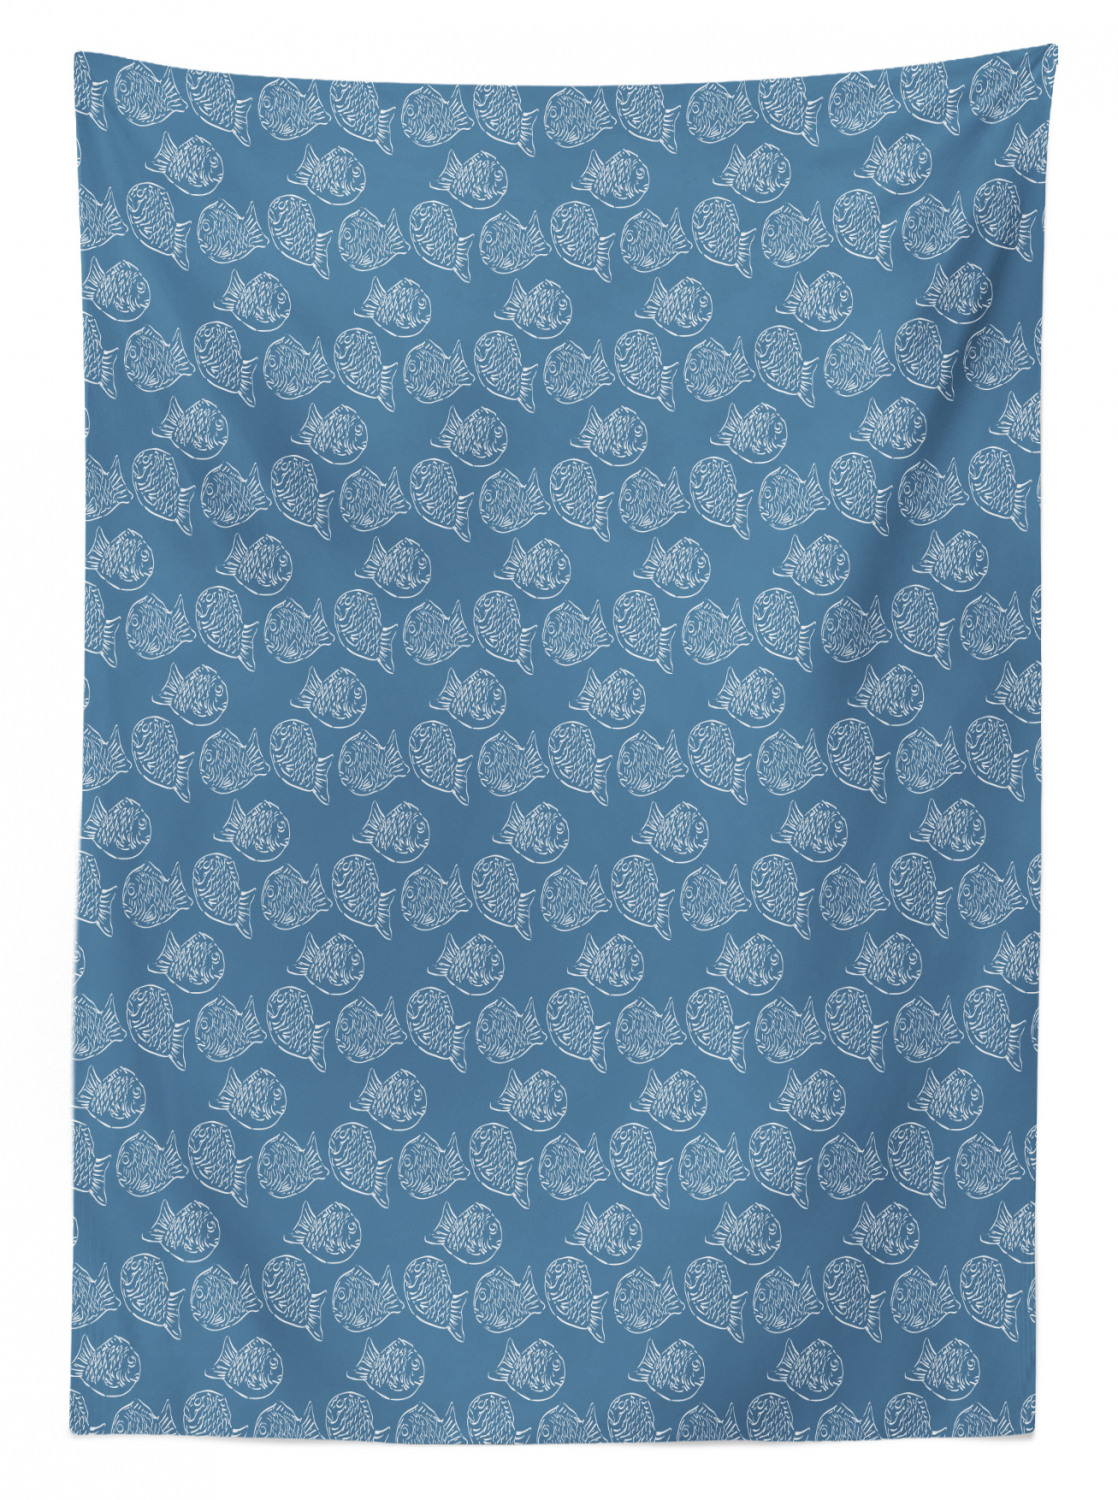 thumbnail 95 - Ambesonne Marine Pattern Tablecloth Table Cover for Dining Room Kitchen